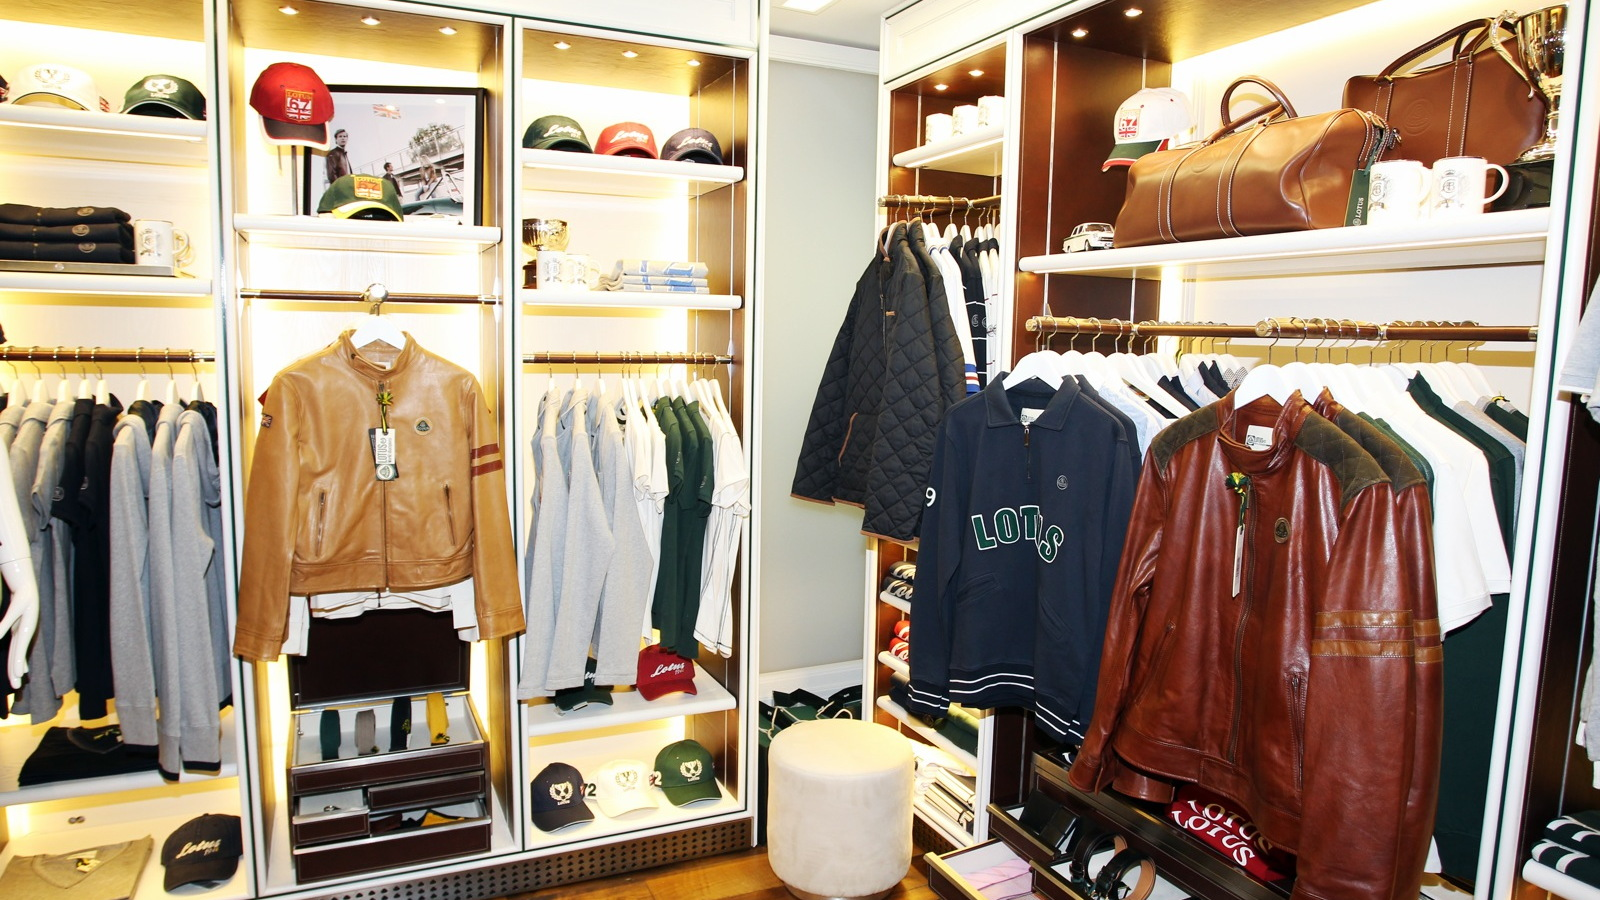 Lotus Originals' first retail location, in Monaco